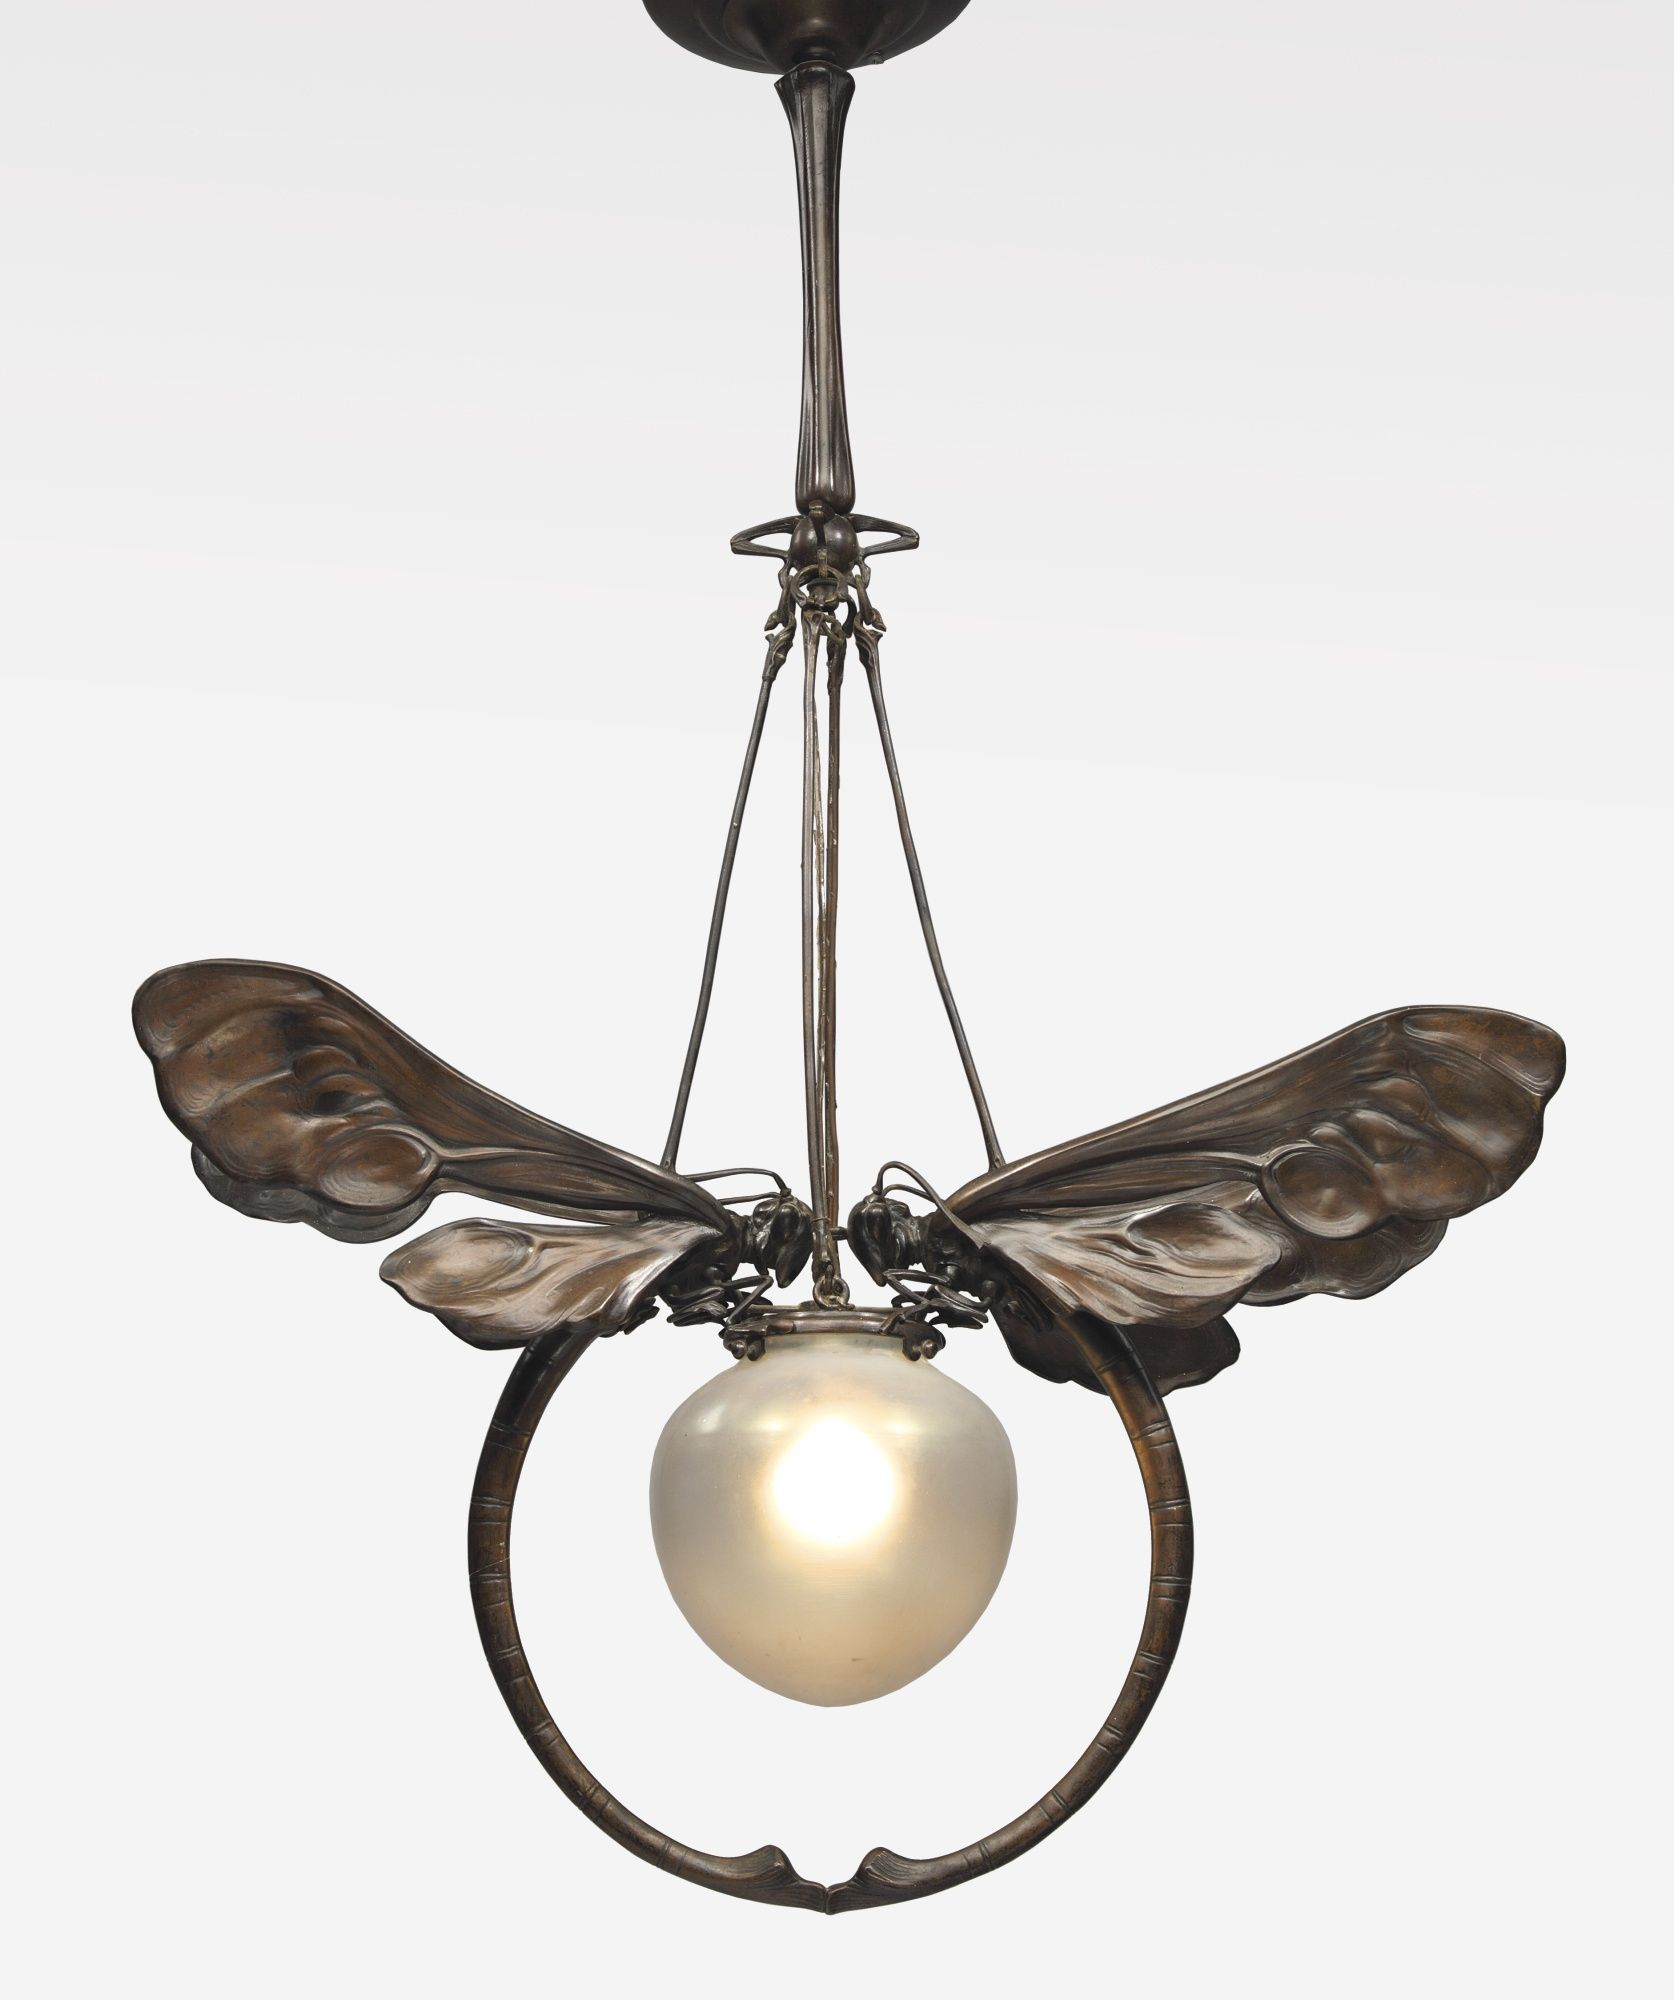 European Art Nouveau chandelier in patinated bronze and glass , ca. 1900, sold by Sotheby's, December, 2014 for $87,500